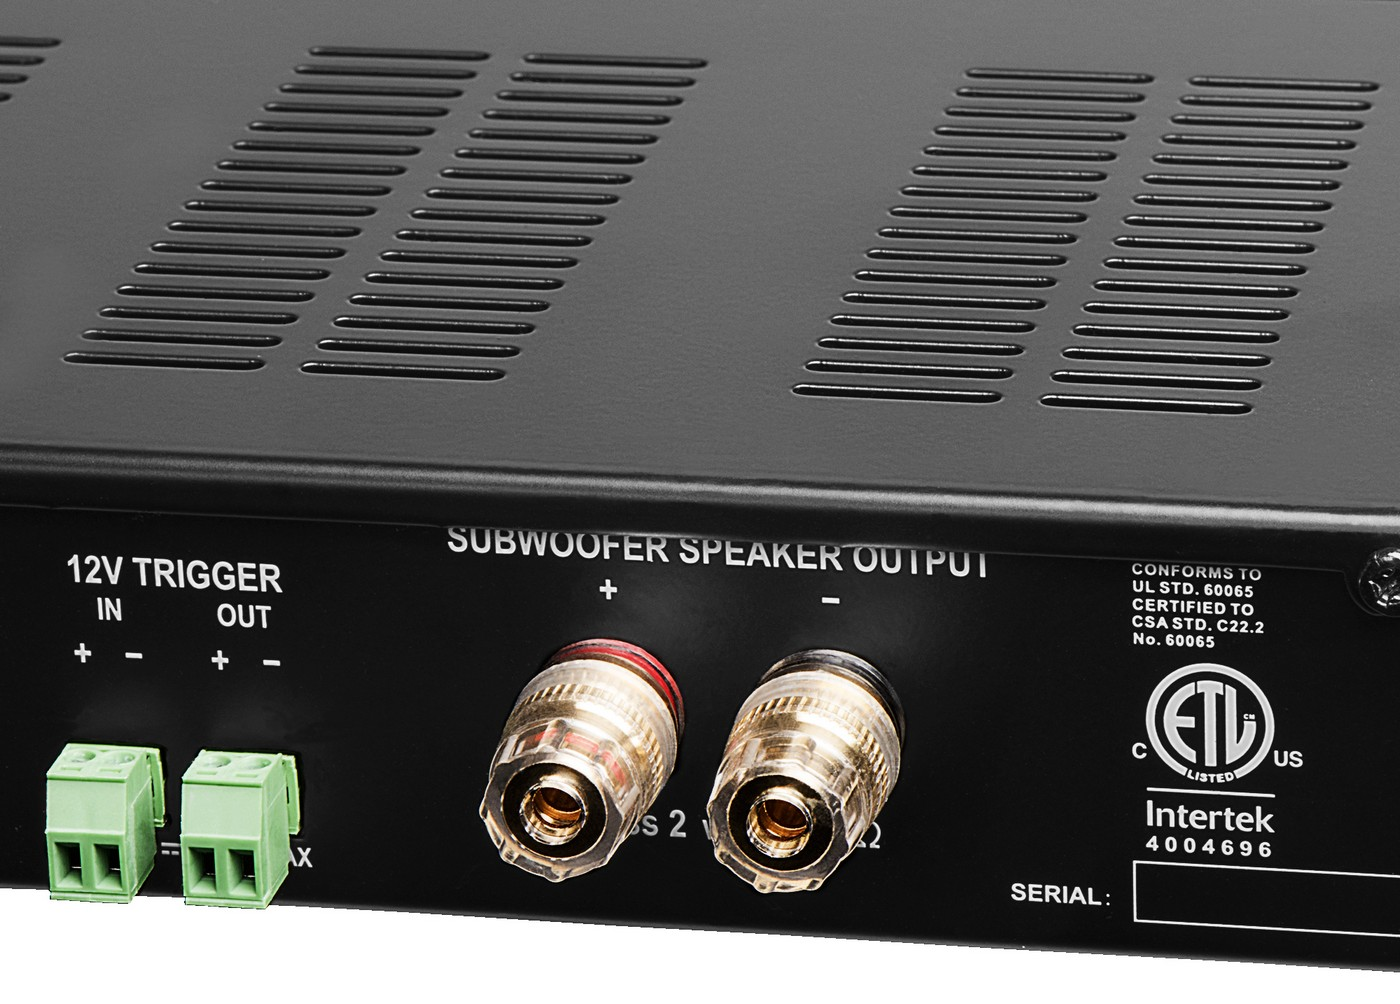 Smp500 Mono Channel Class D Subwoofer Amplifier Digital Onboard Wiring Subwoofers Speakers To Change Ohms Dsp 400w 4 8 Etl And Ce Certified